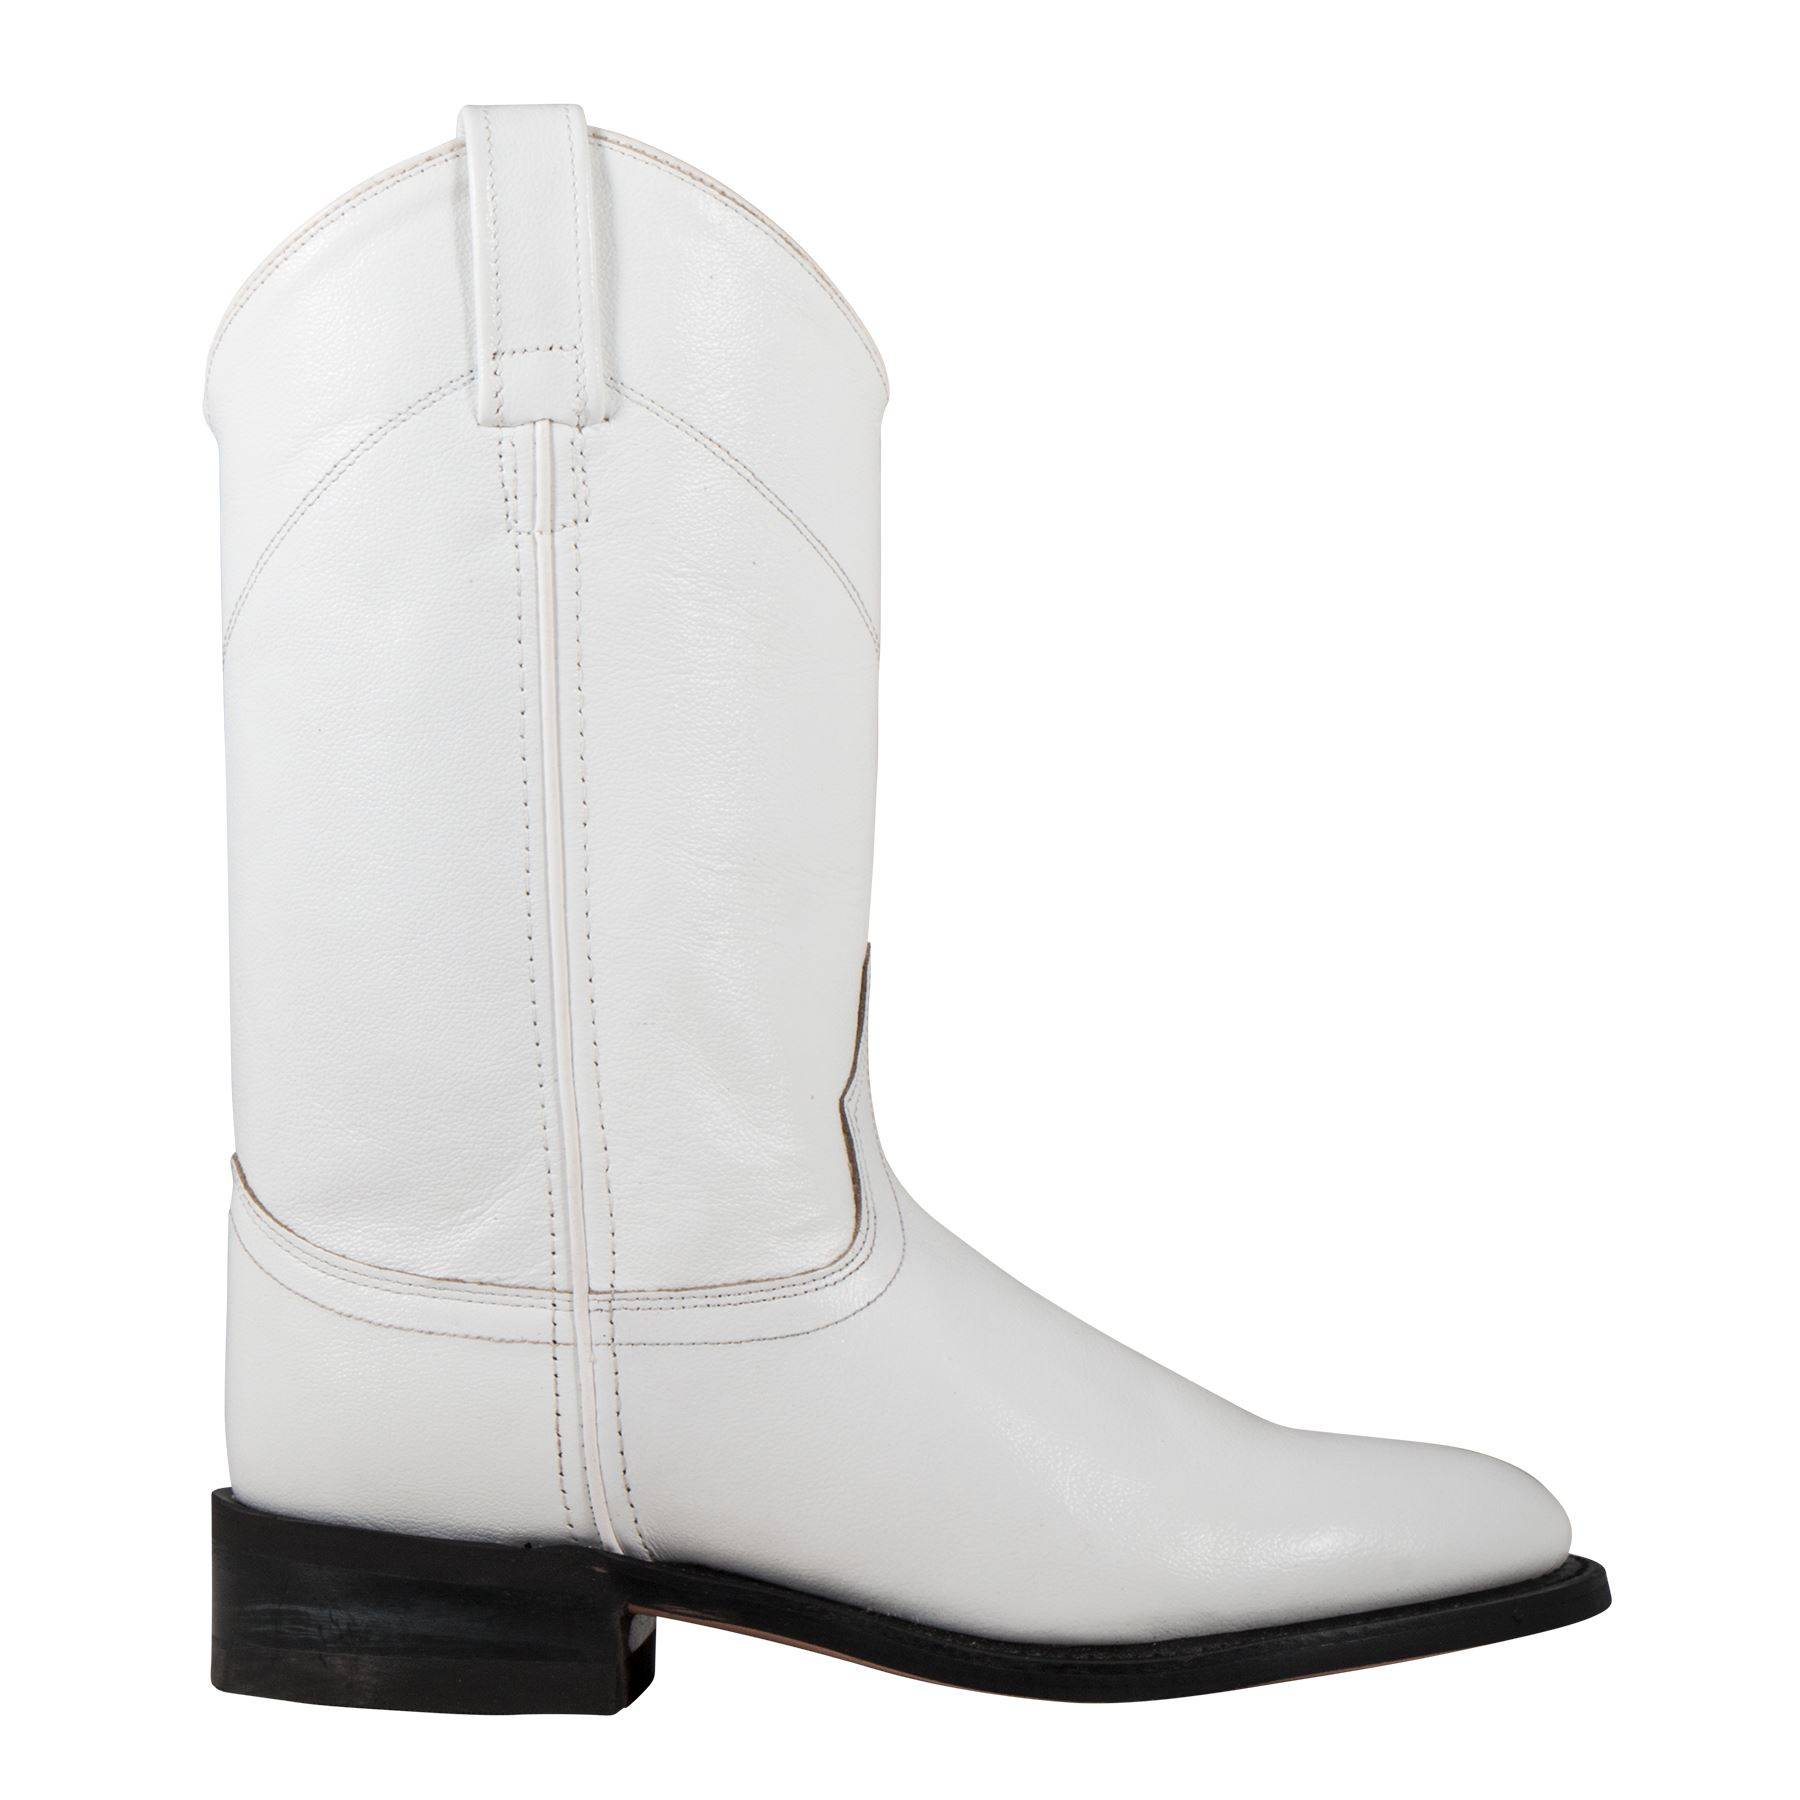 Old West White Dyeable Leather Roper